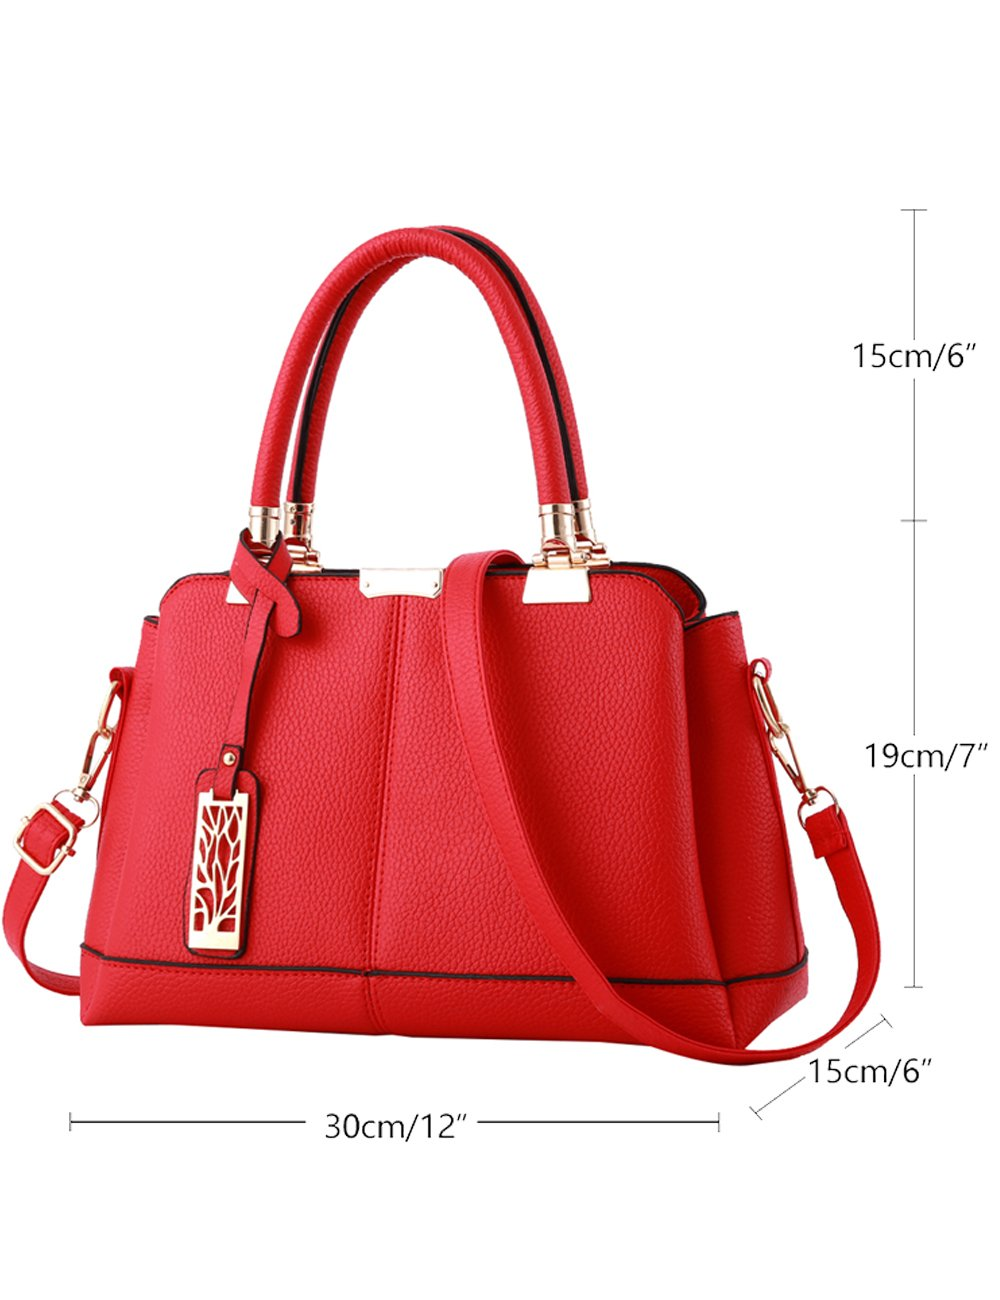 Womens PU Cross-body Hand Handle Bags Shoulder Bags Red by CUKKE (Image #2)